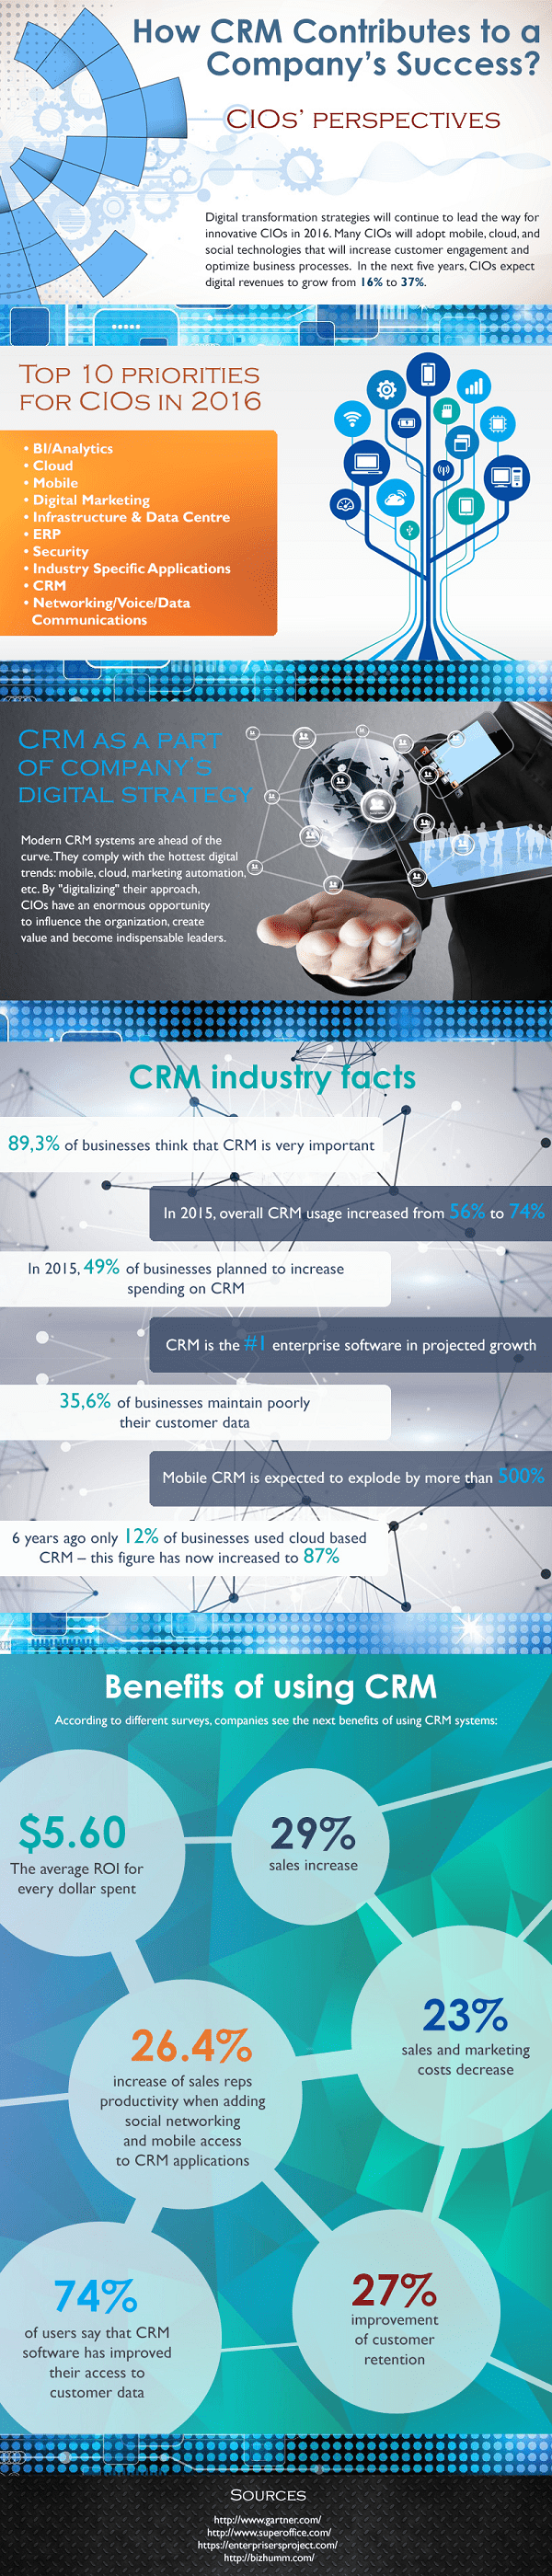 How CRM Contributes to a Company's Success: CIOs' Perspectives [Infographic]